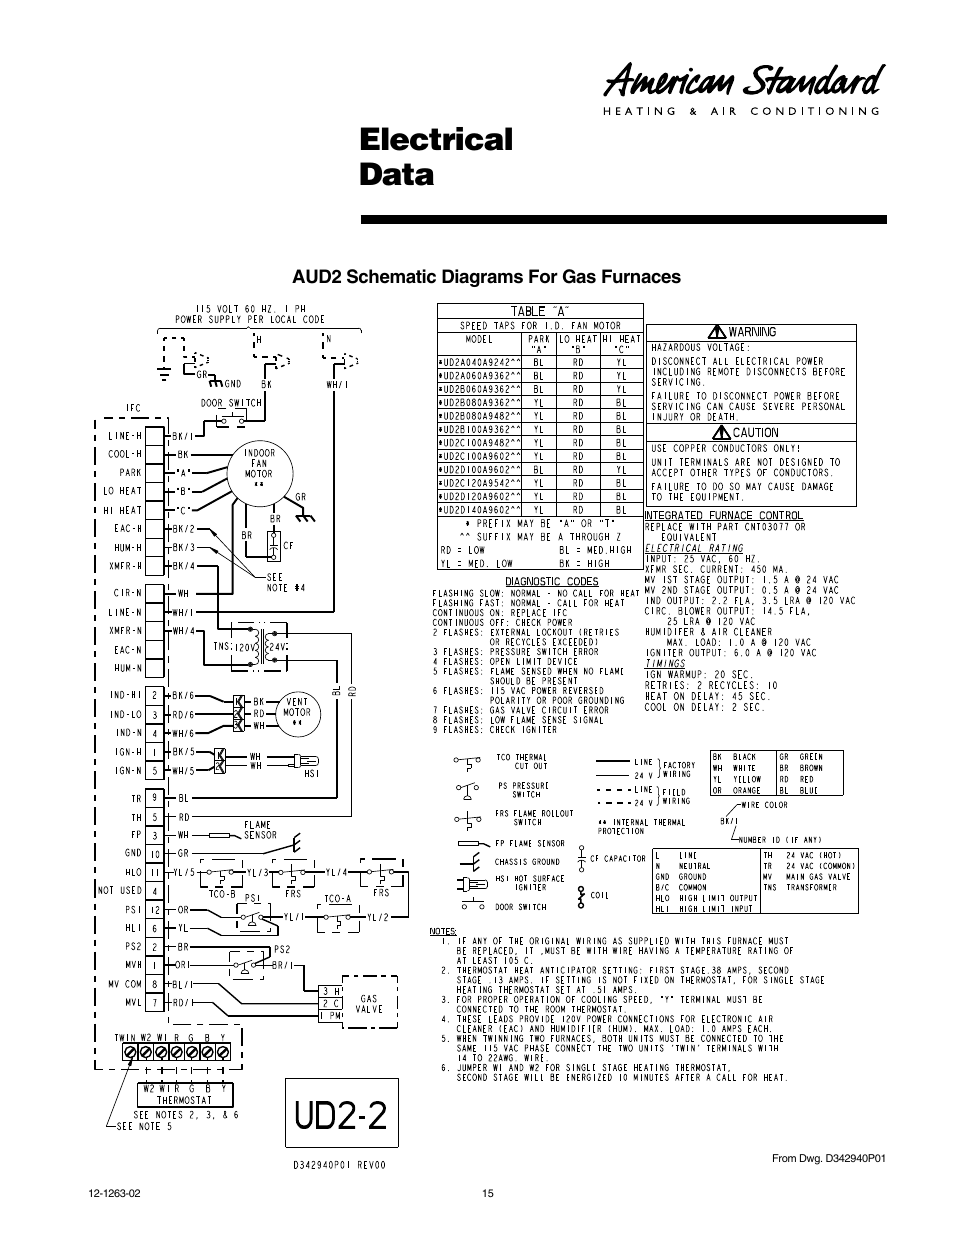 ge wiring diagrams toyota diagram acronyms electrical data | american standard freedom 80 user manual page 15 / 24